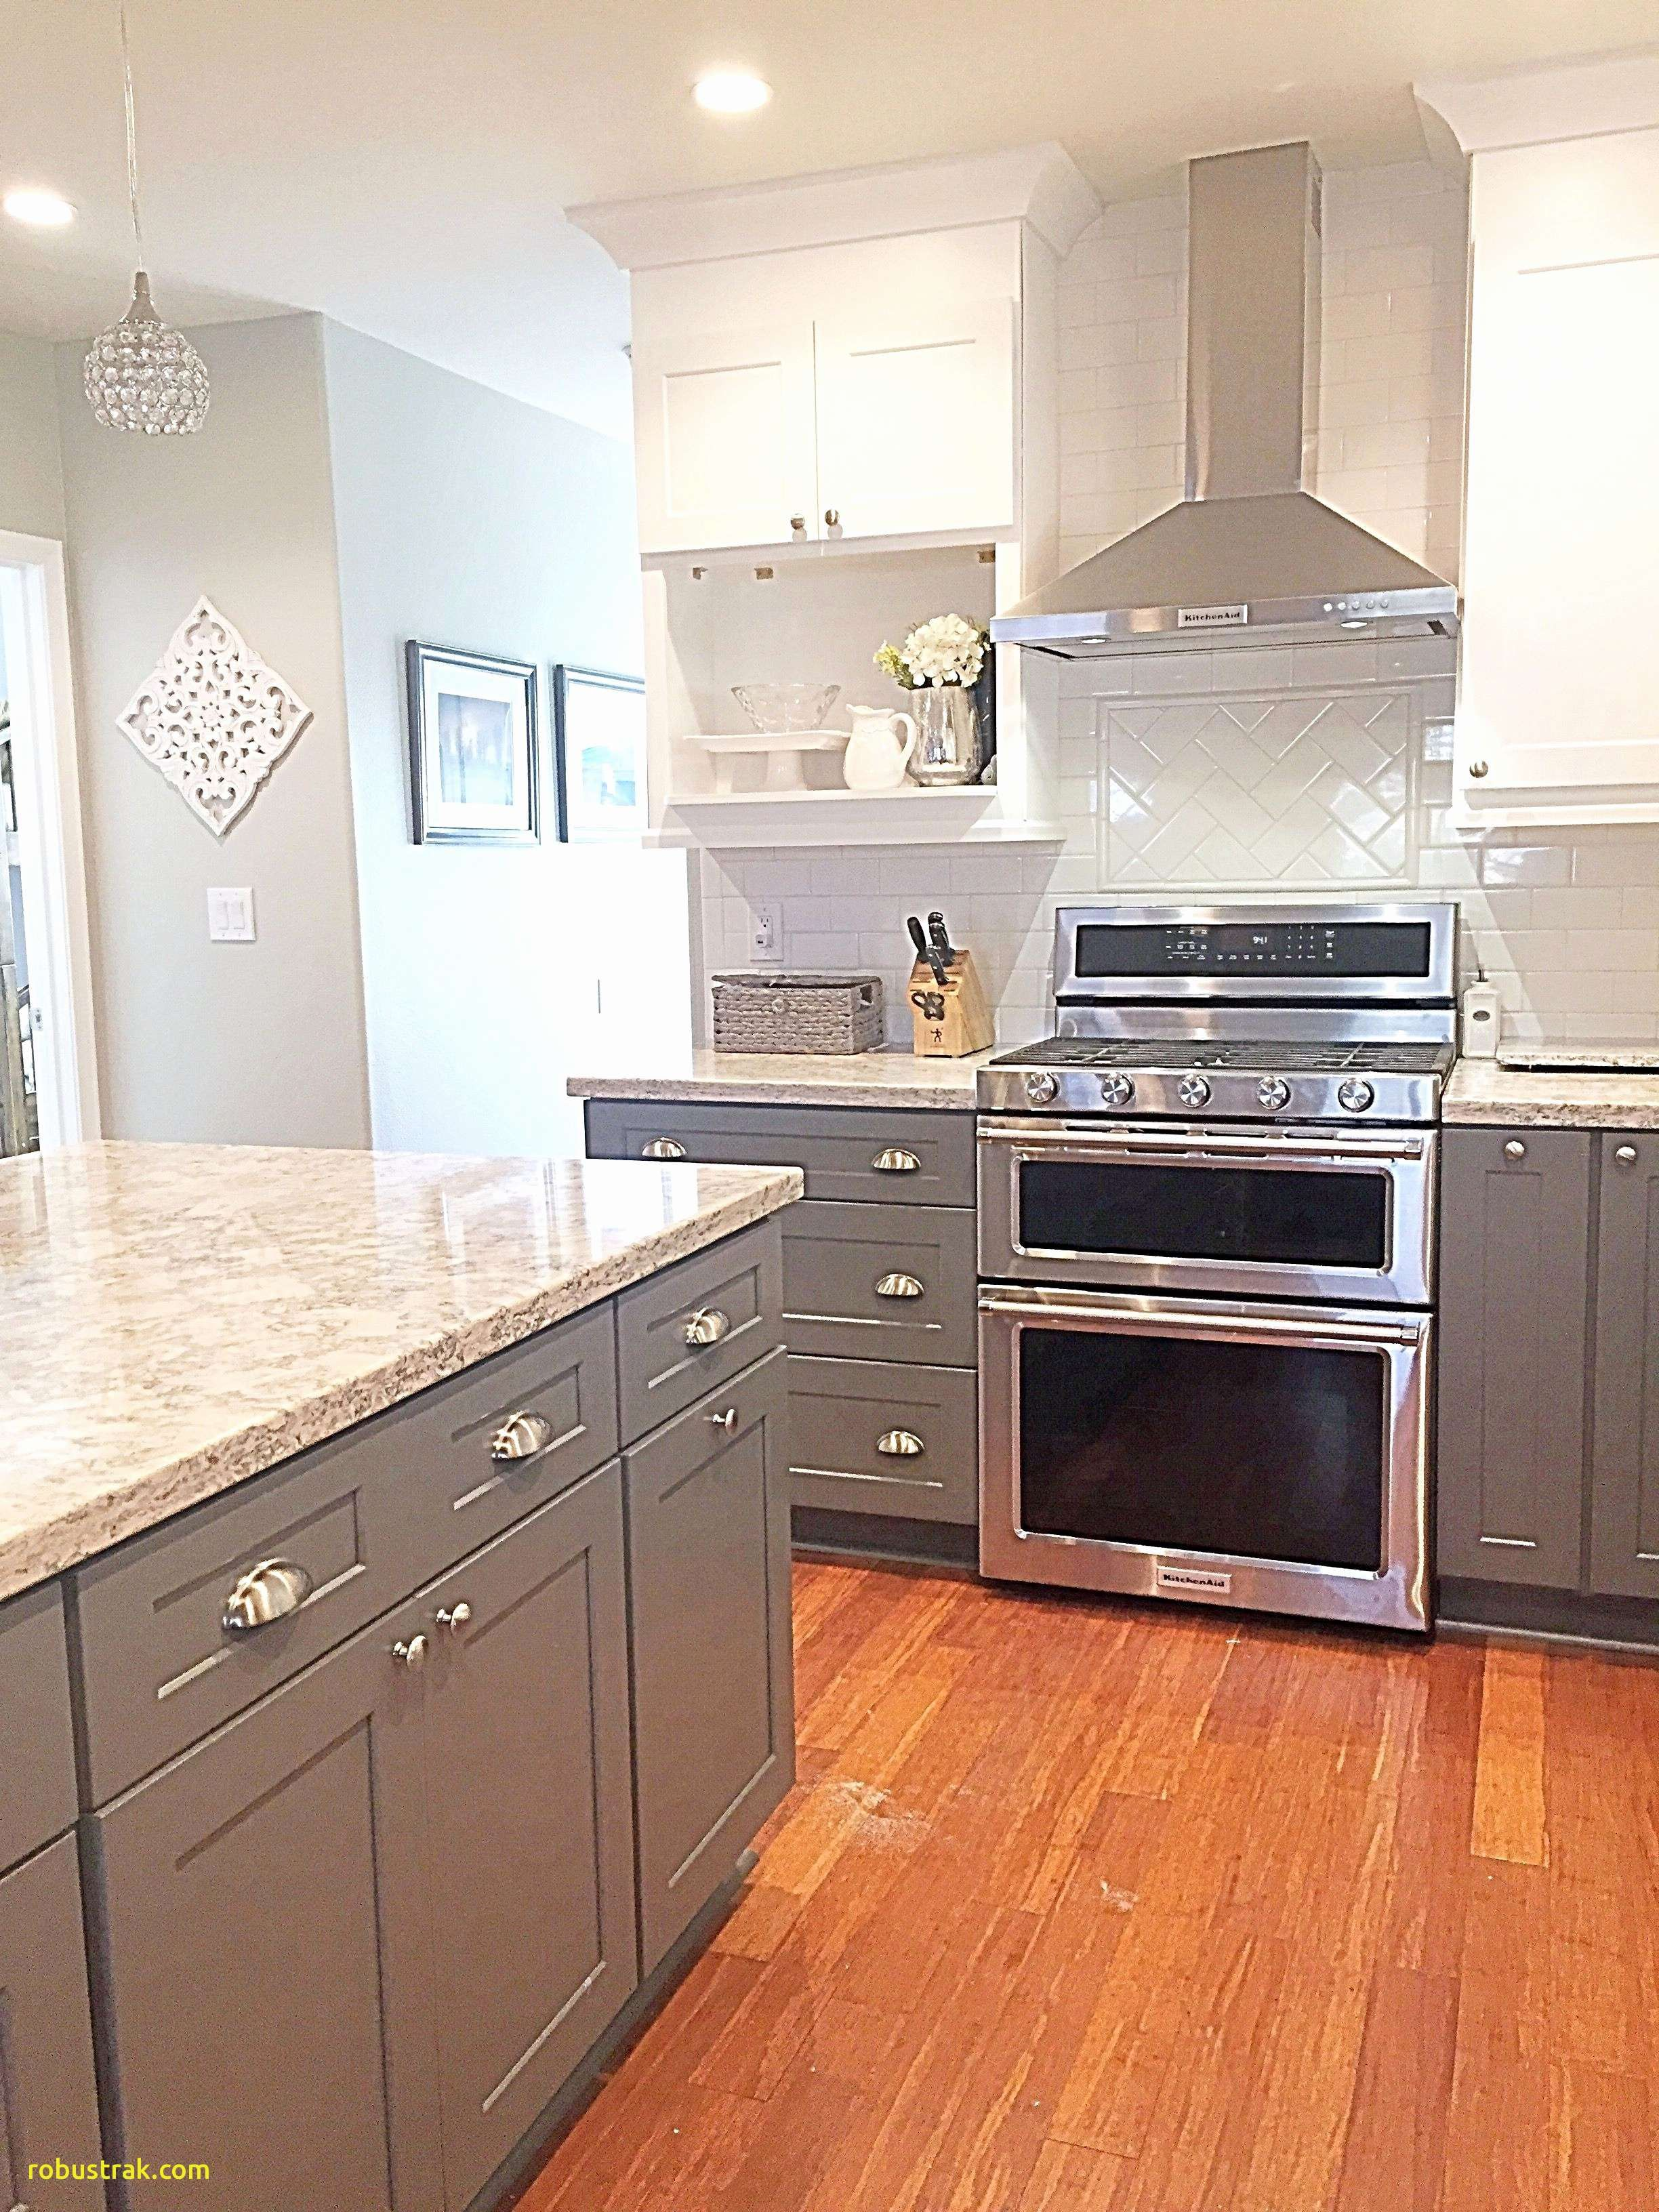 Make Your Own Kitchen Cabinets Beautiful Unique Wood Floors And Of New